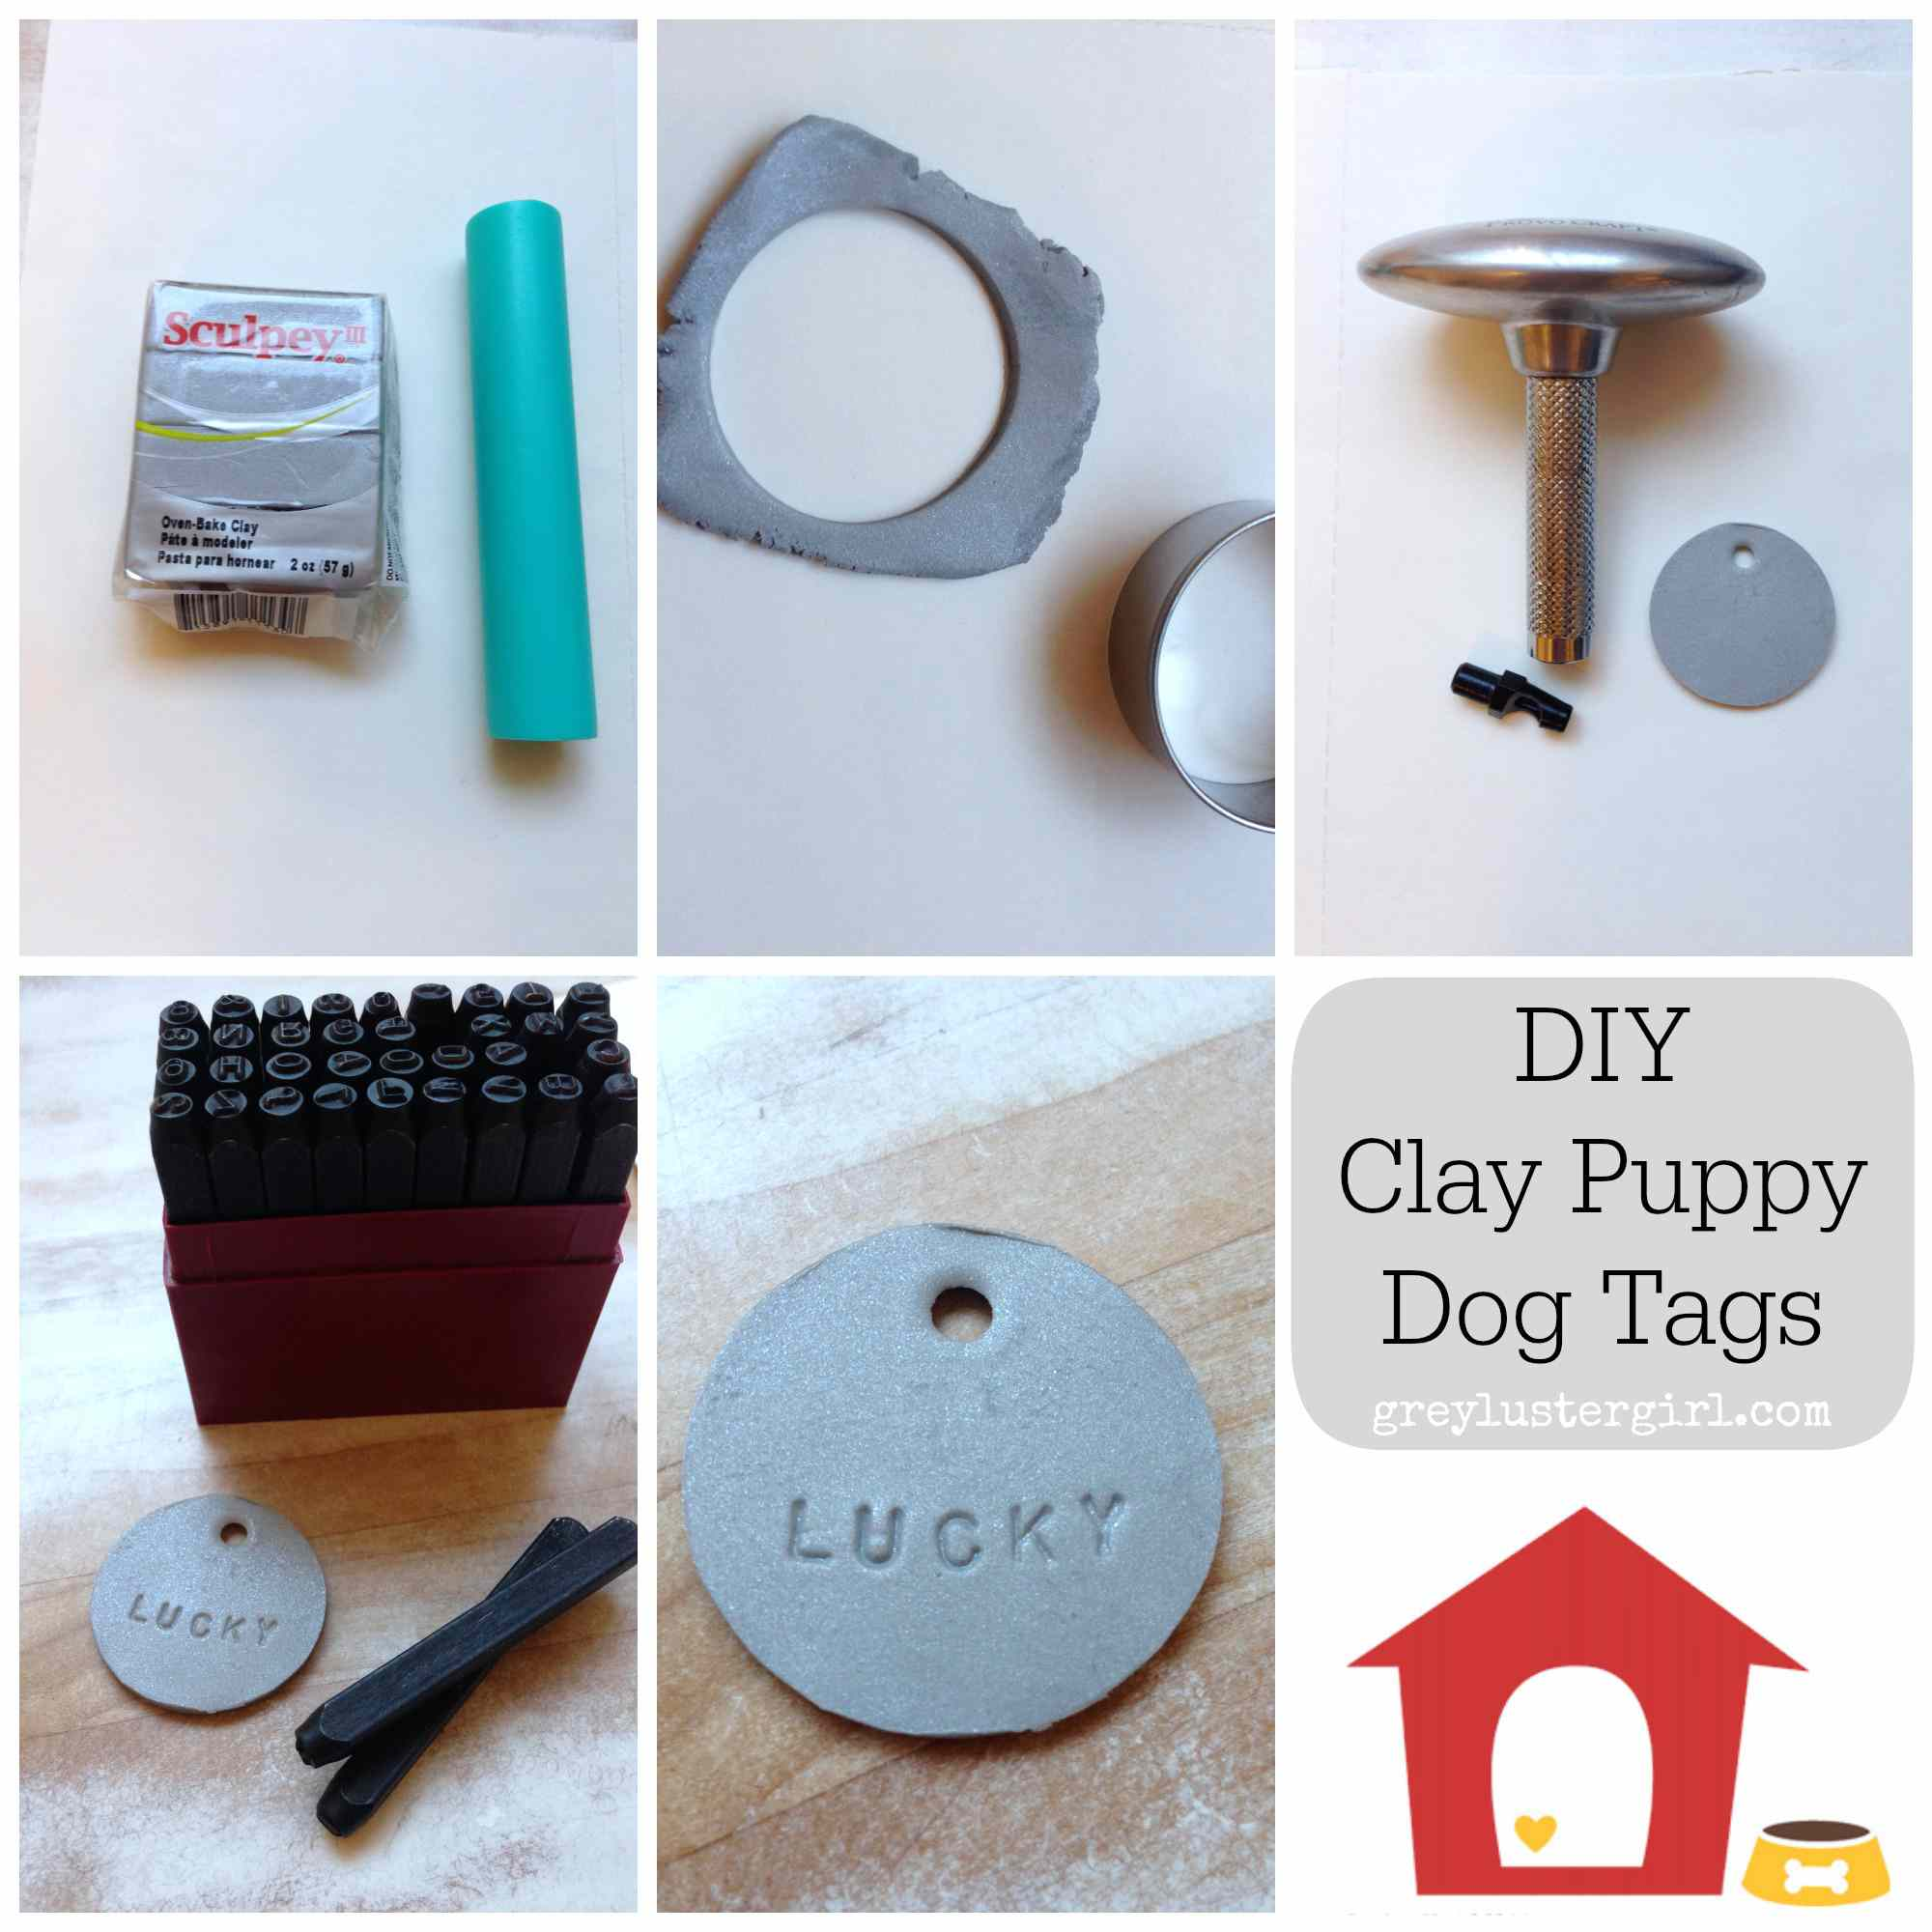 14 Diy Projects To Make For Your Dog